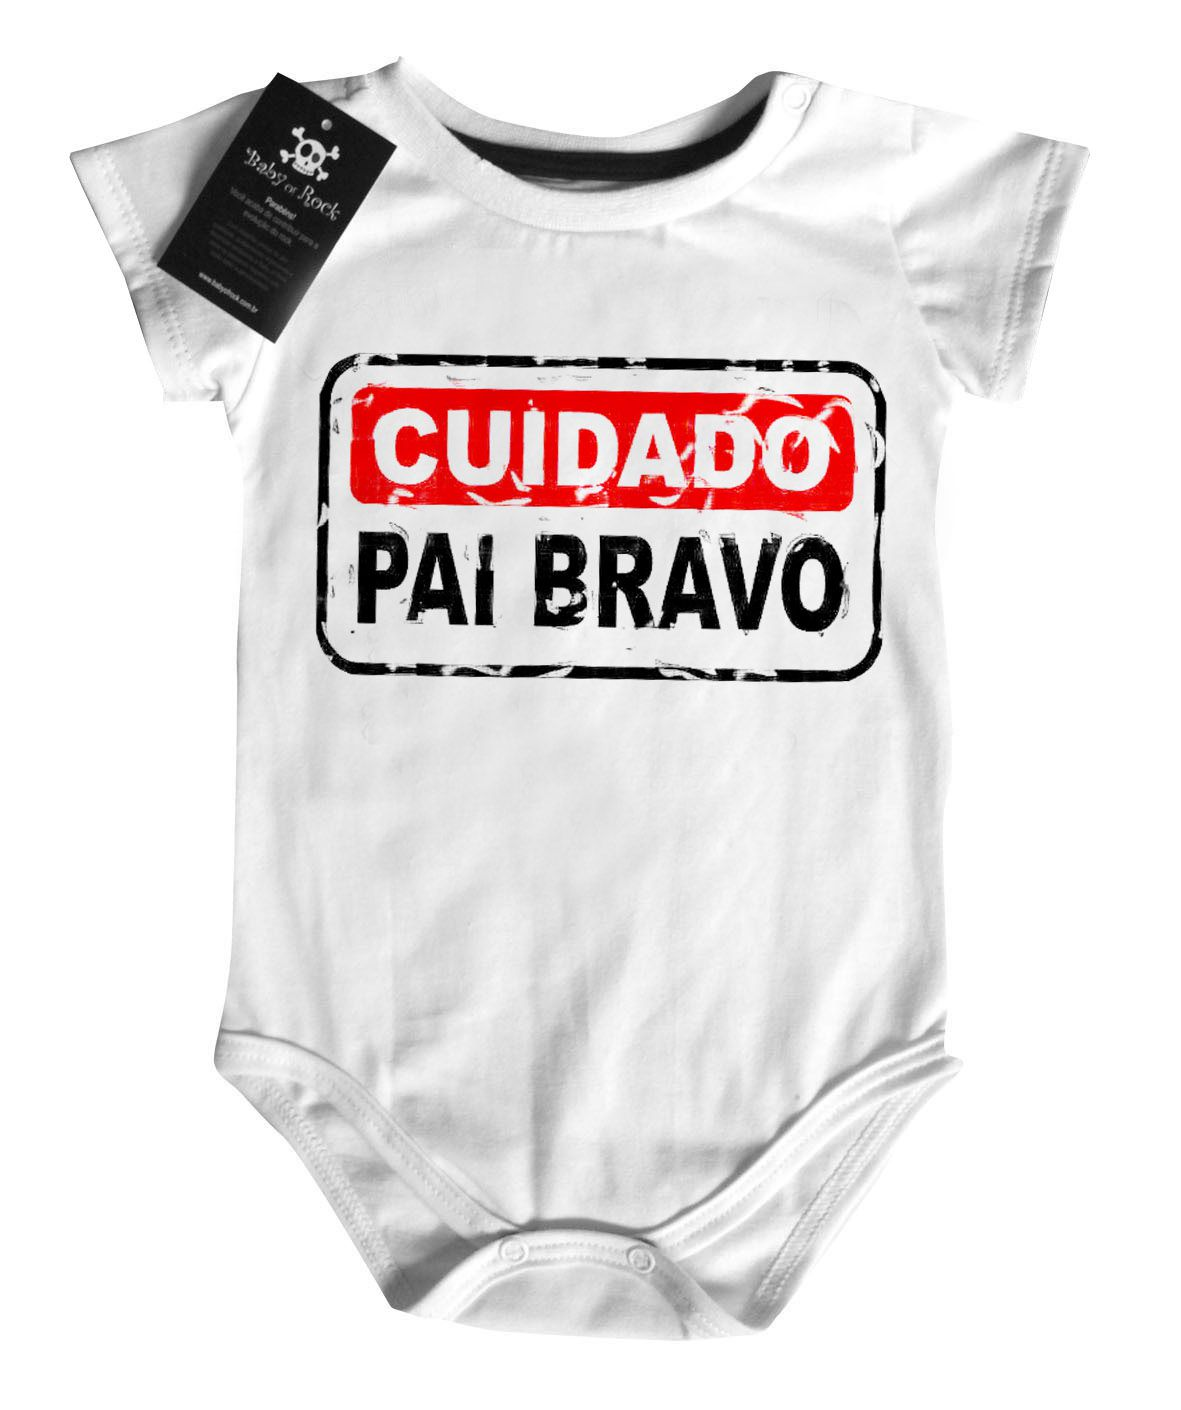 Body Divertido - Cuidado Pai Bravo- White  - Baby Monster S/A